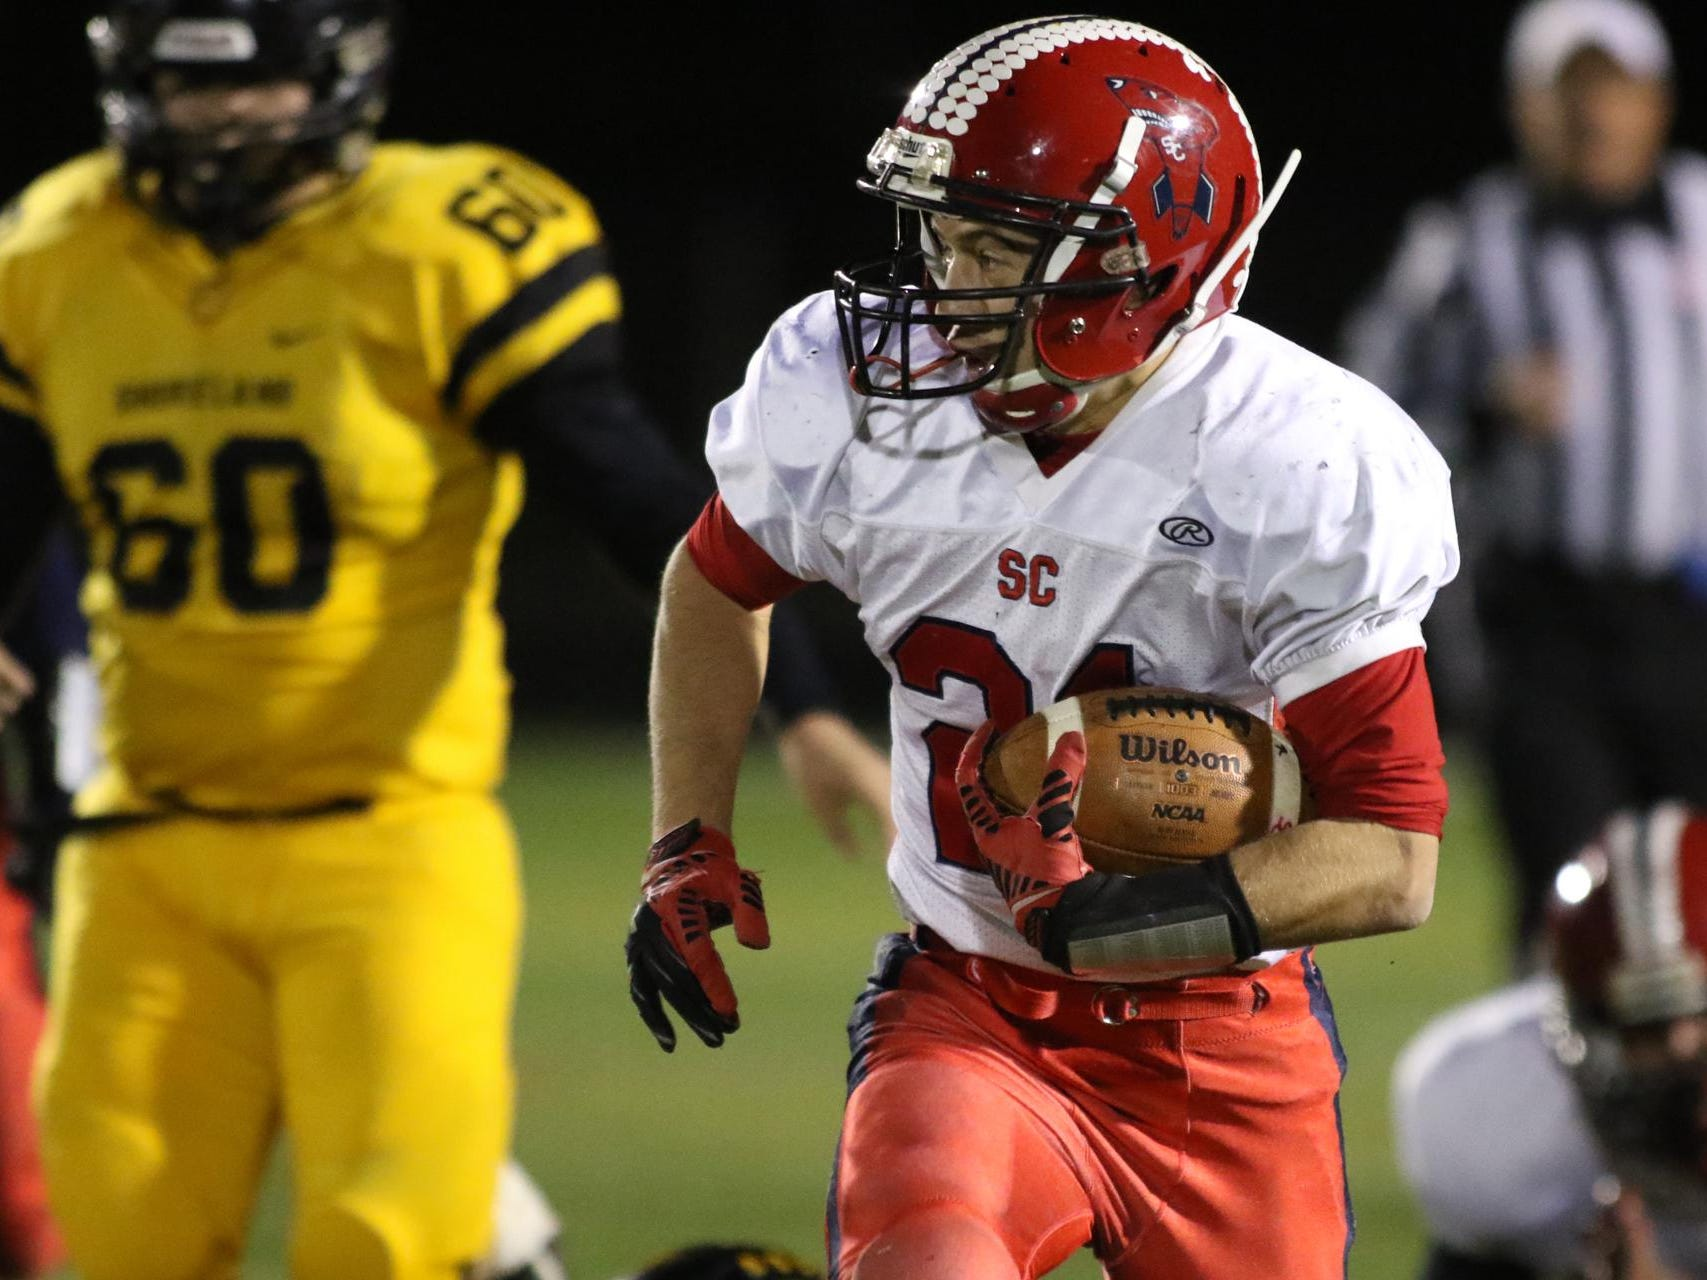 Running back Noah Zastrow looks to his left as he bolts for a touchdown run in the first quarter as Spencer/Columbus demolished Shoreland Lutheran, 50-7 in Ripon, Friday, November 13, 2015.